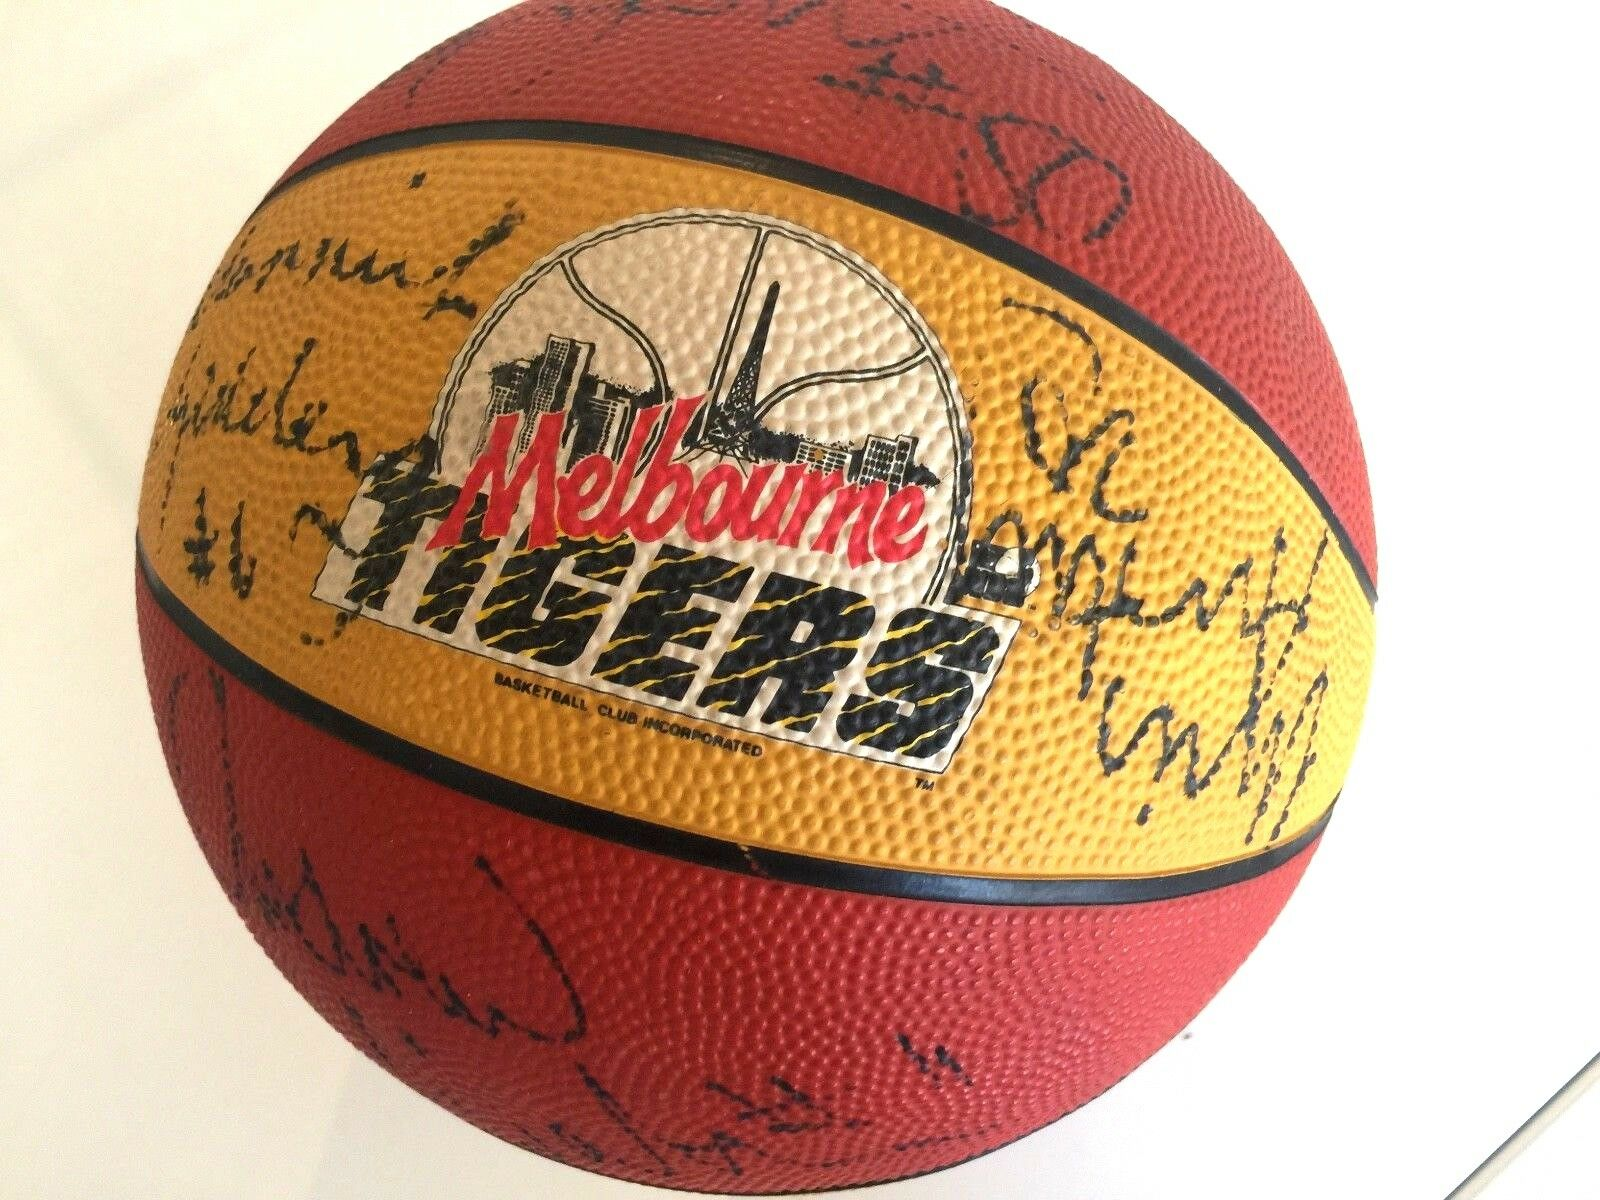 NBL 1993 Melbourne Tigers Team Signed BasketBall